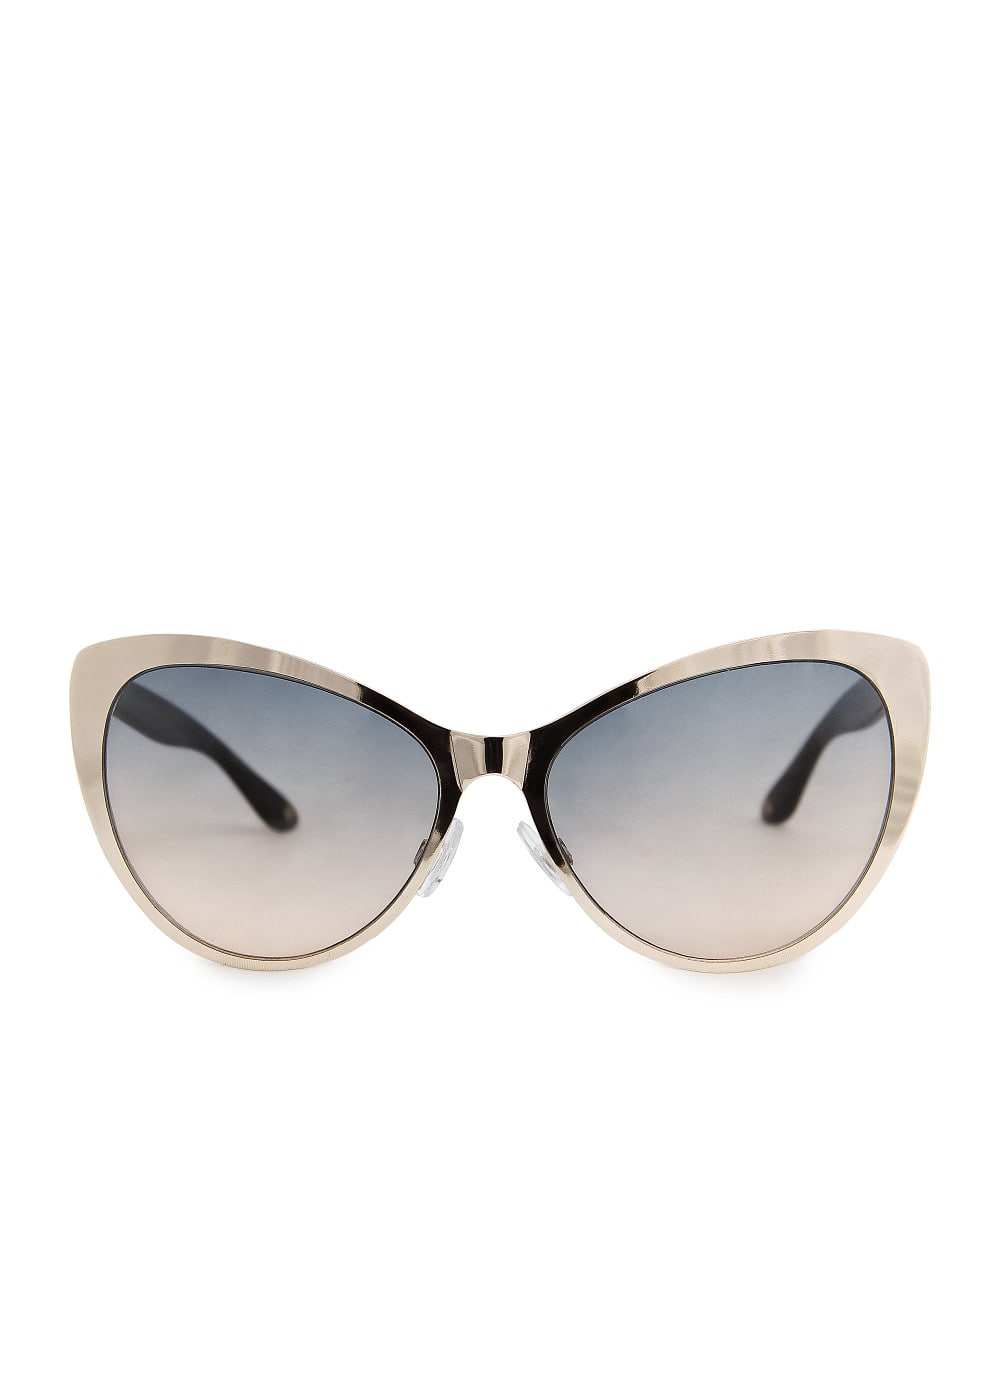 ce1ffa54ee Metal cat-eye sunglasses - Woman